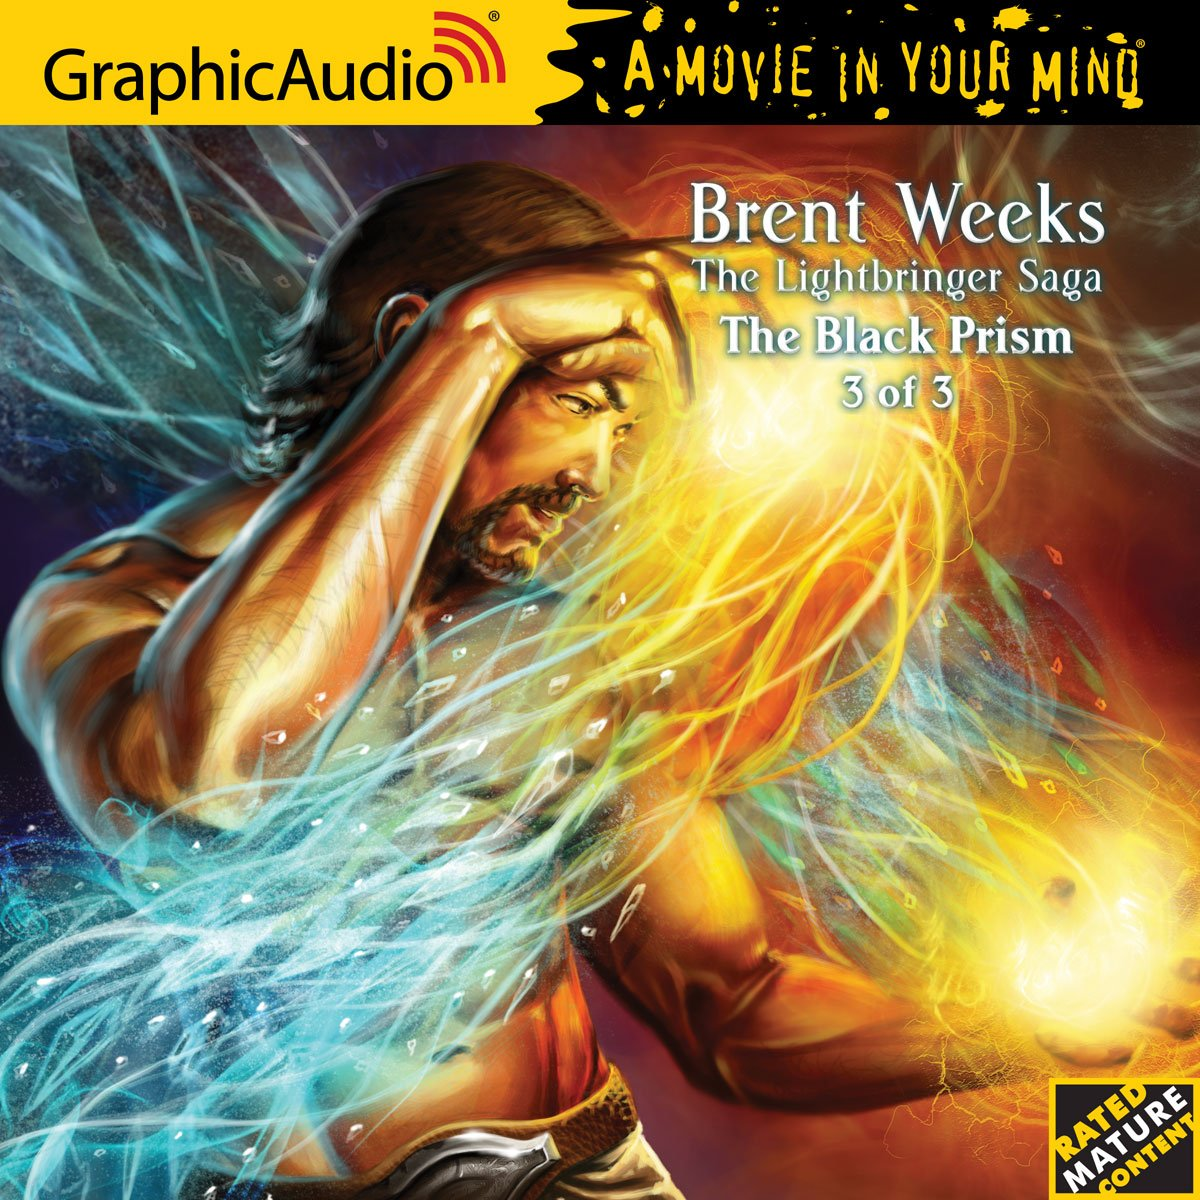 Buy The Black Prism (The Lightbringer Trilogy - GraphicAudio - A Movie in  Your Mind) Book Online at Low Prices in India | The Black Prism (The  Lightbringer ...